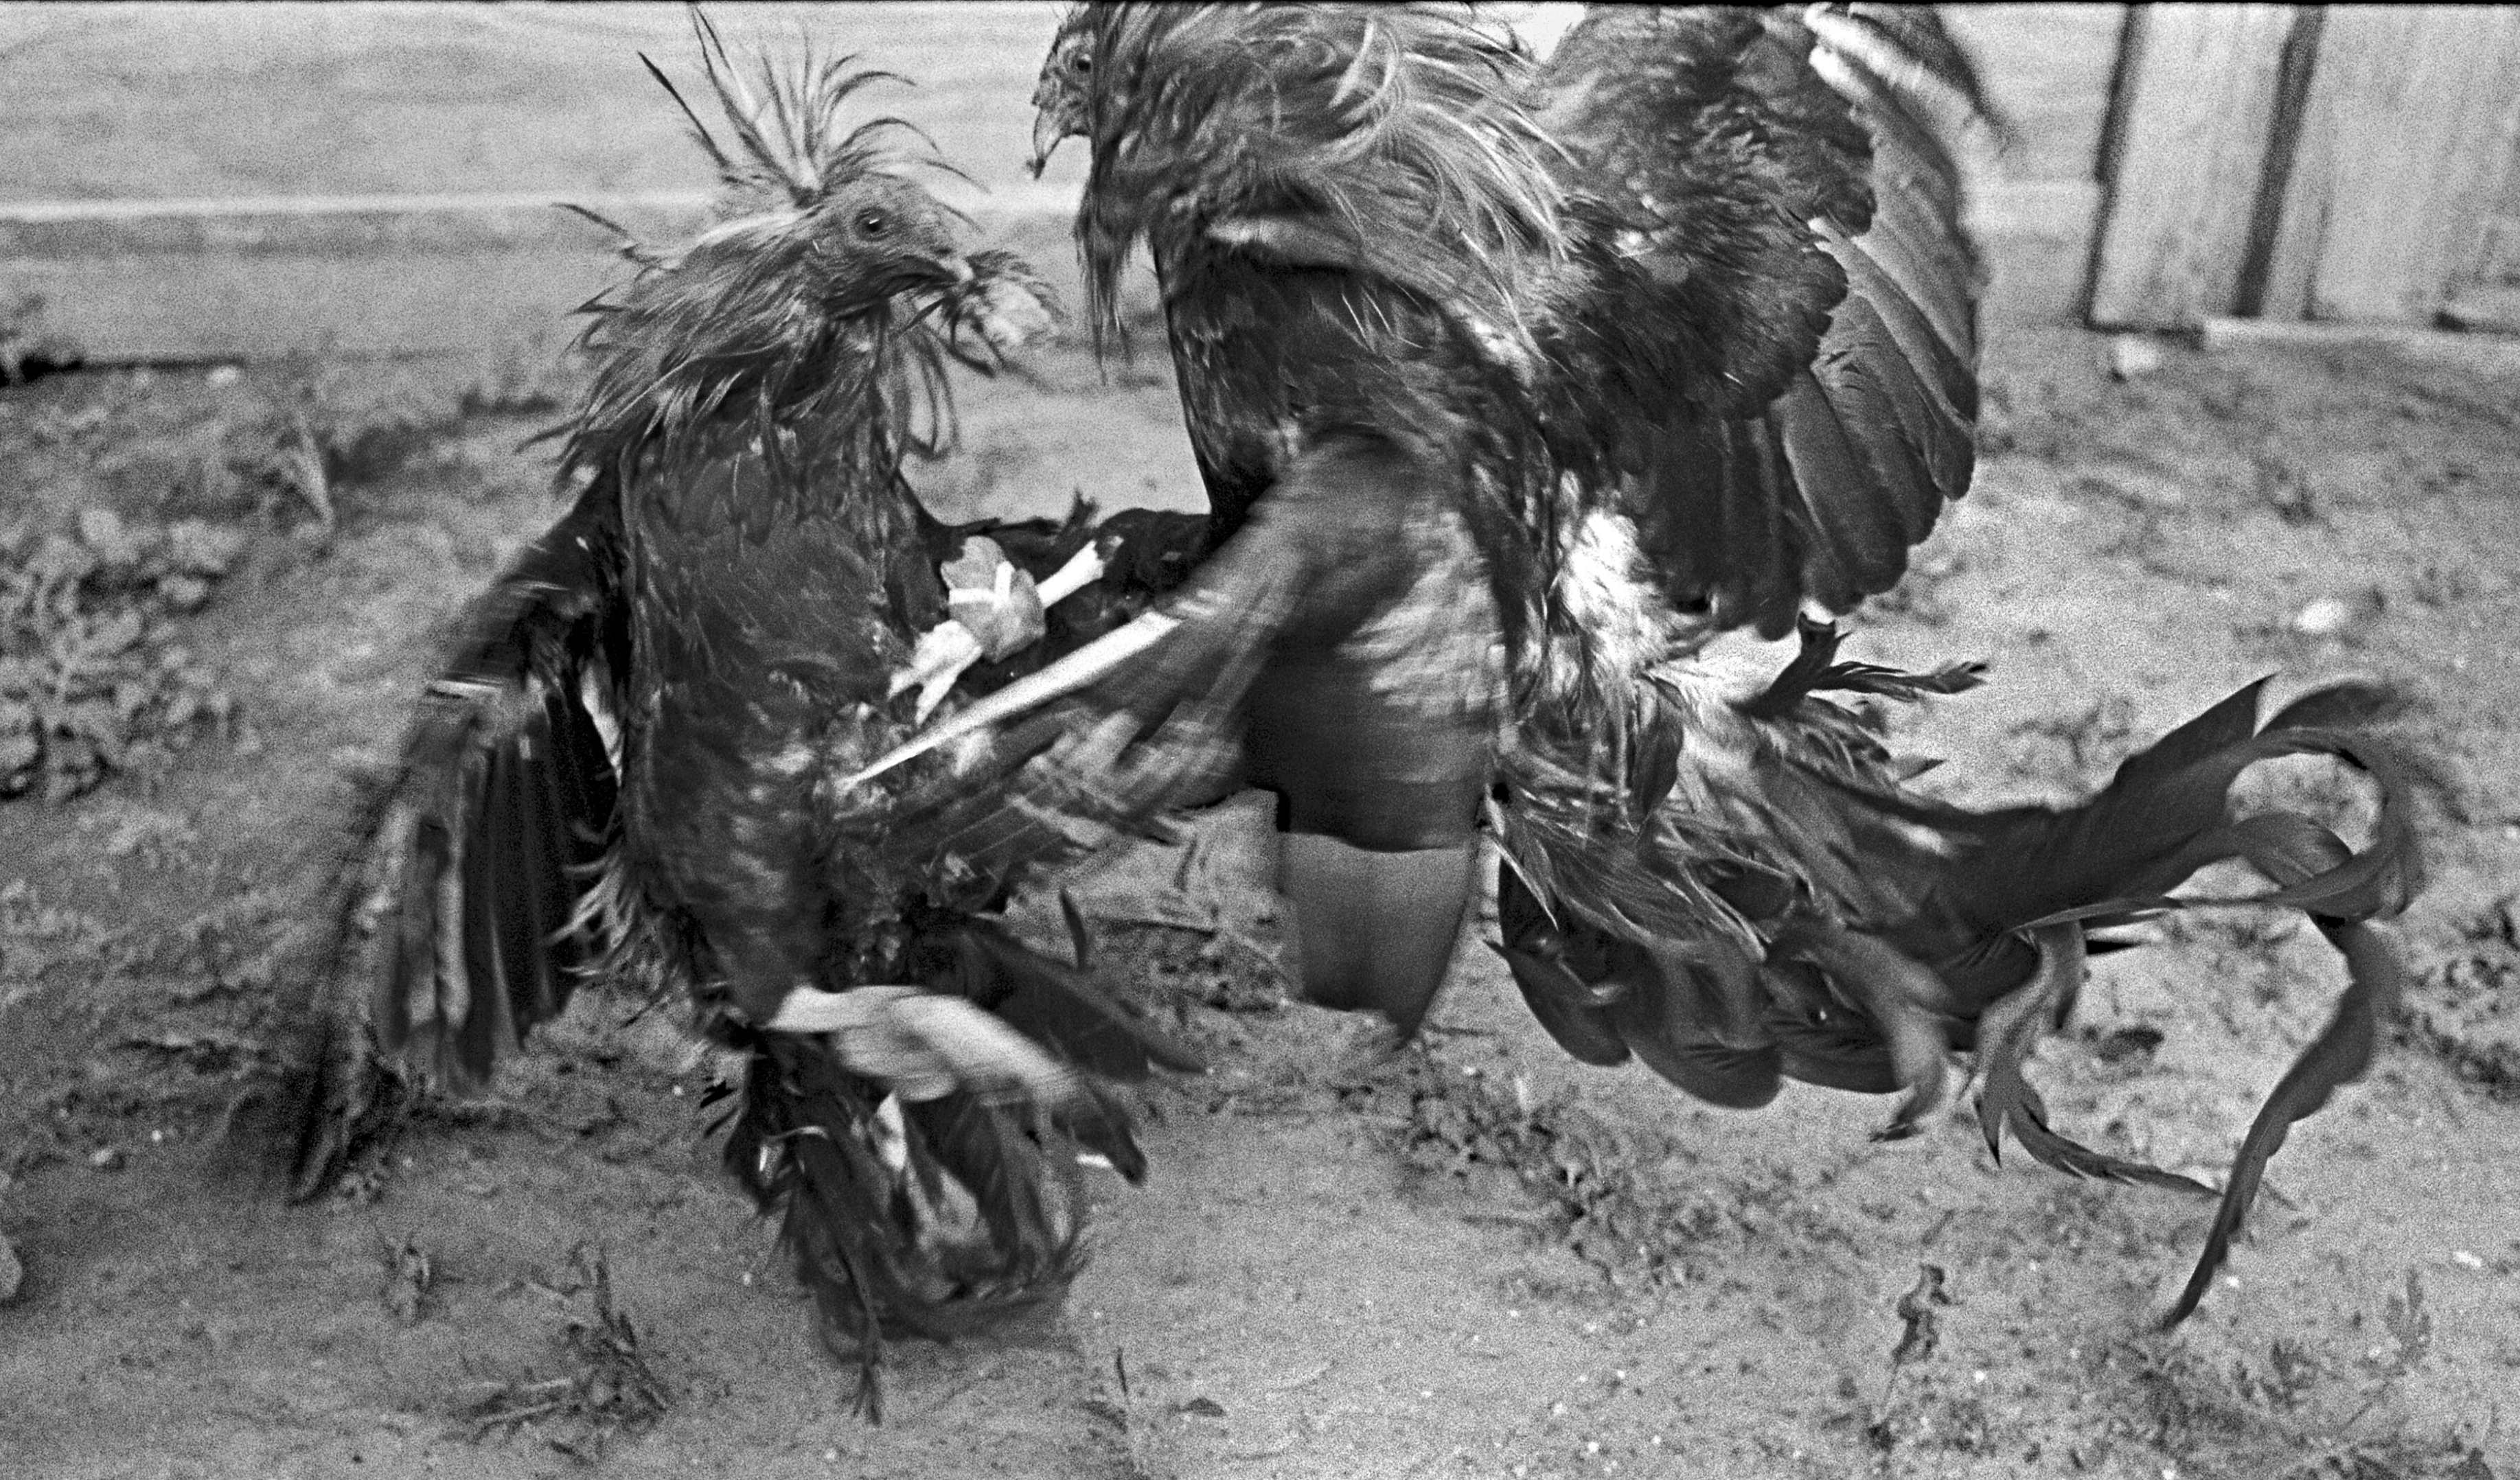 Fighting Cocks, Webb County, Texas, 1994